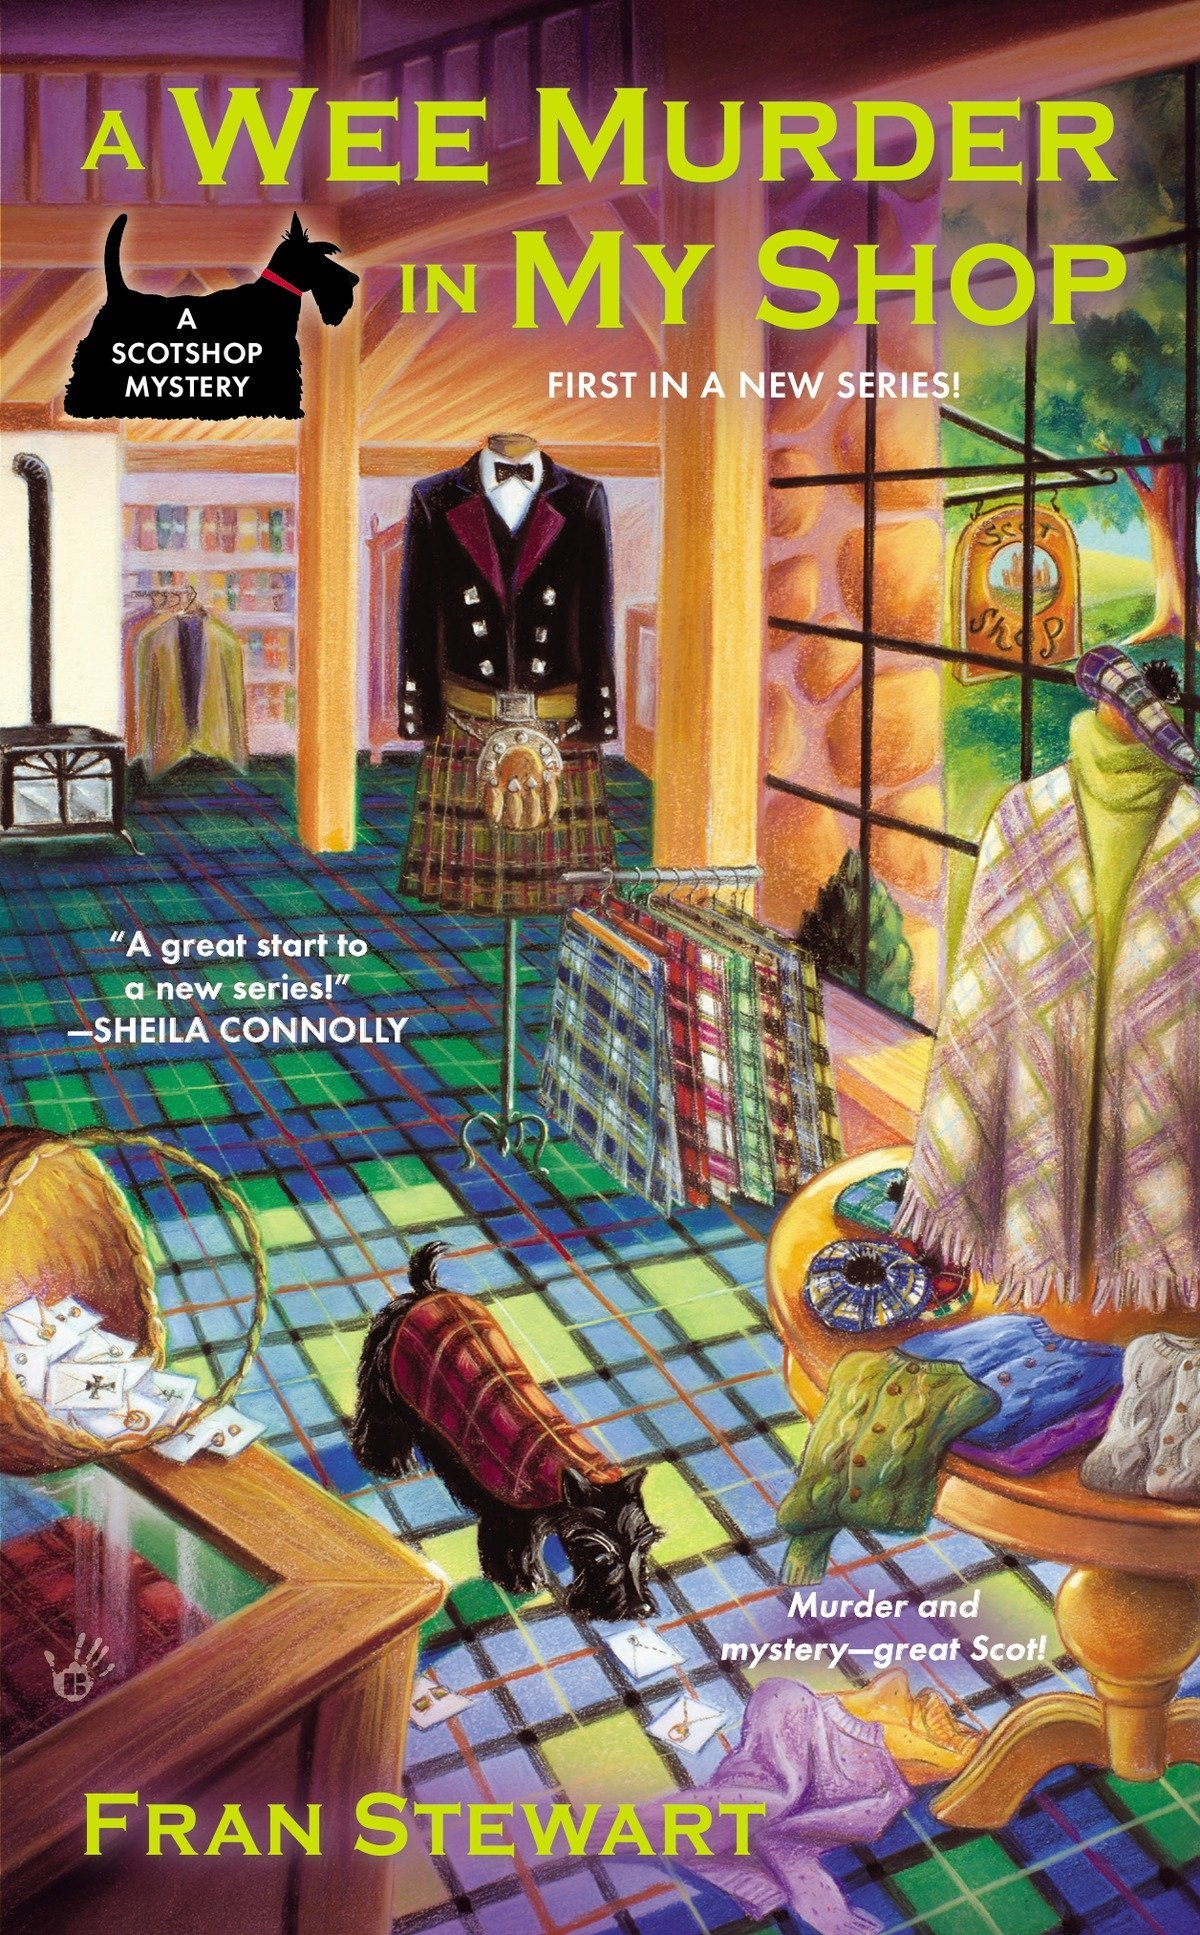 Amazon.com: A Wee Murder in My Shop (A ScotShop Mystery) (9780425270318):  Fran Stewart: Books